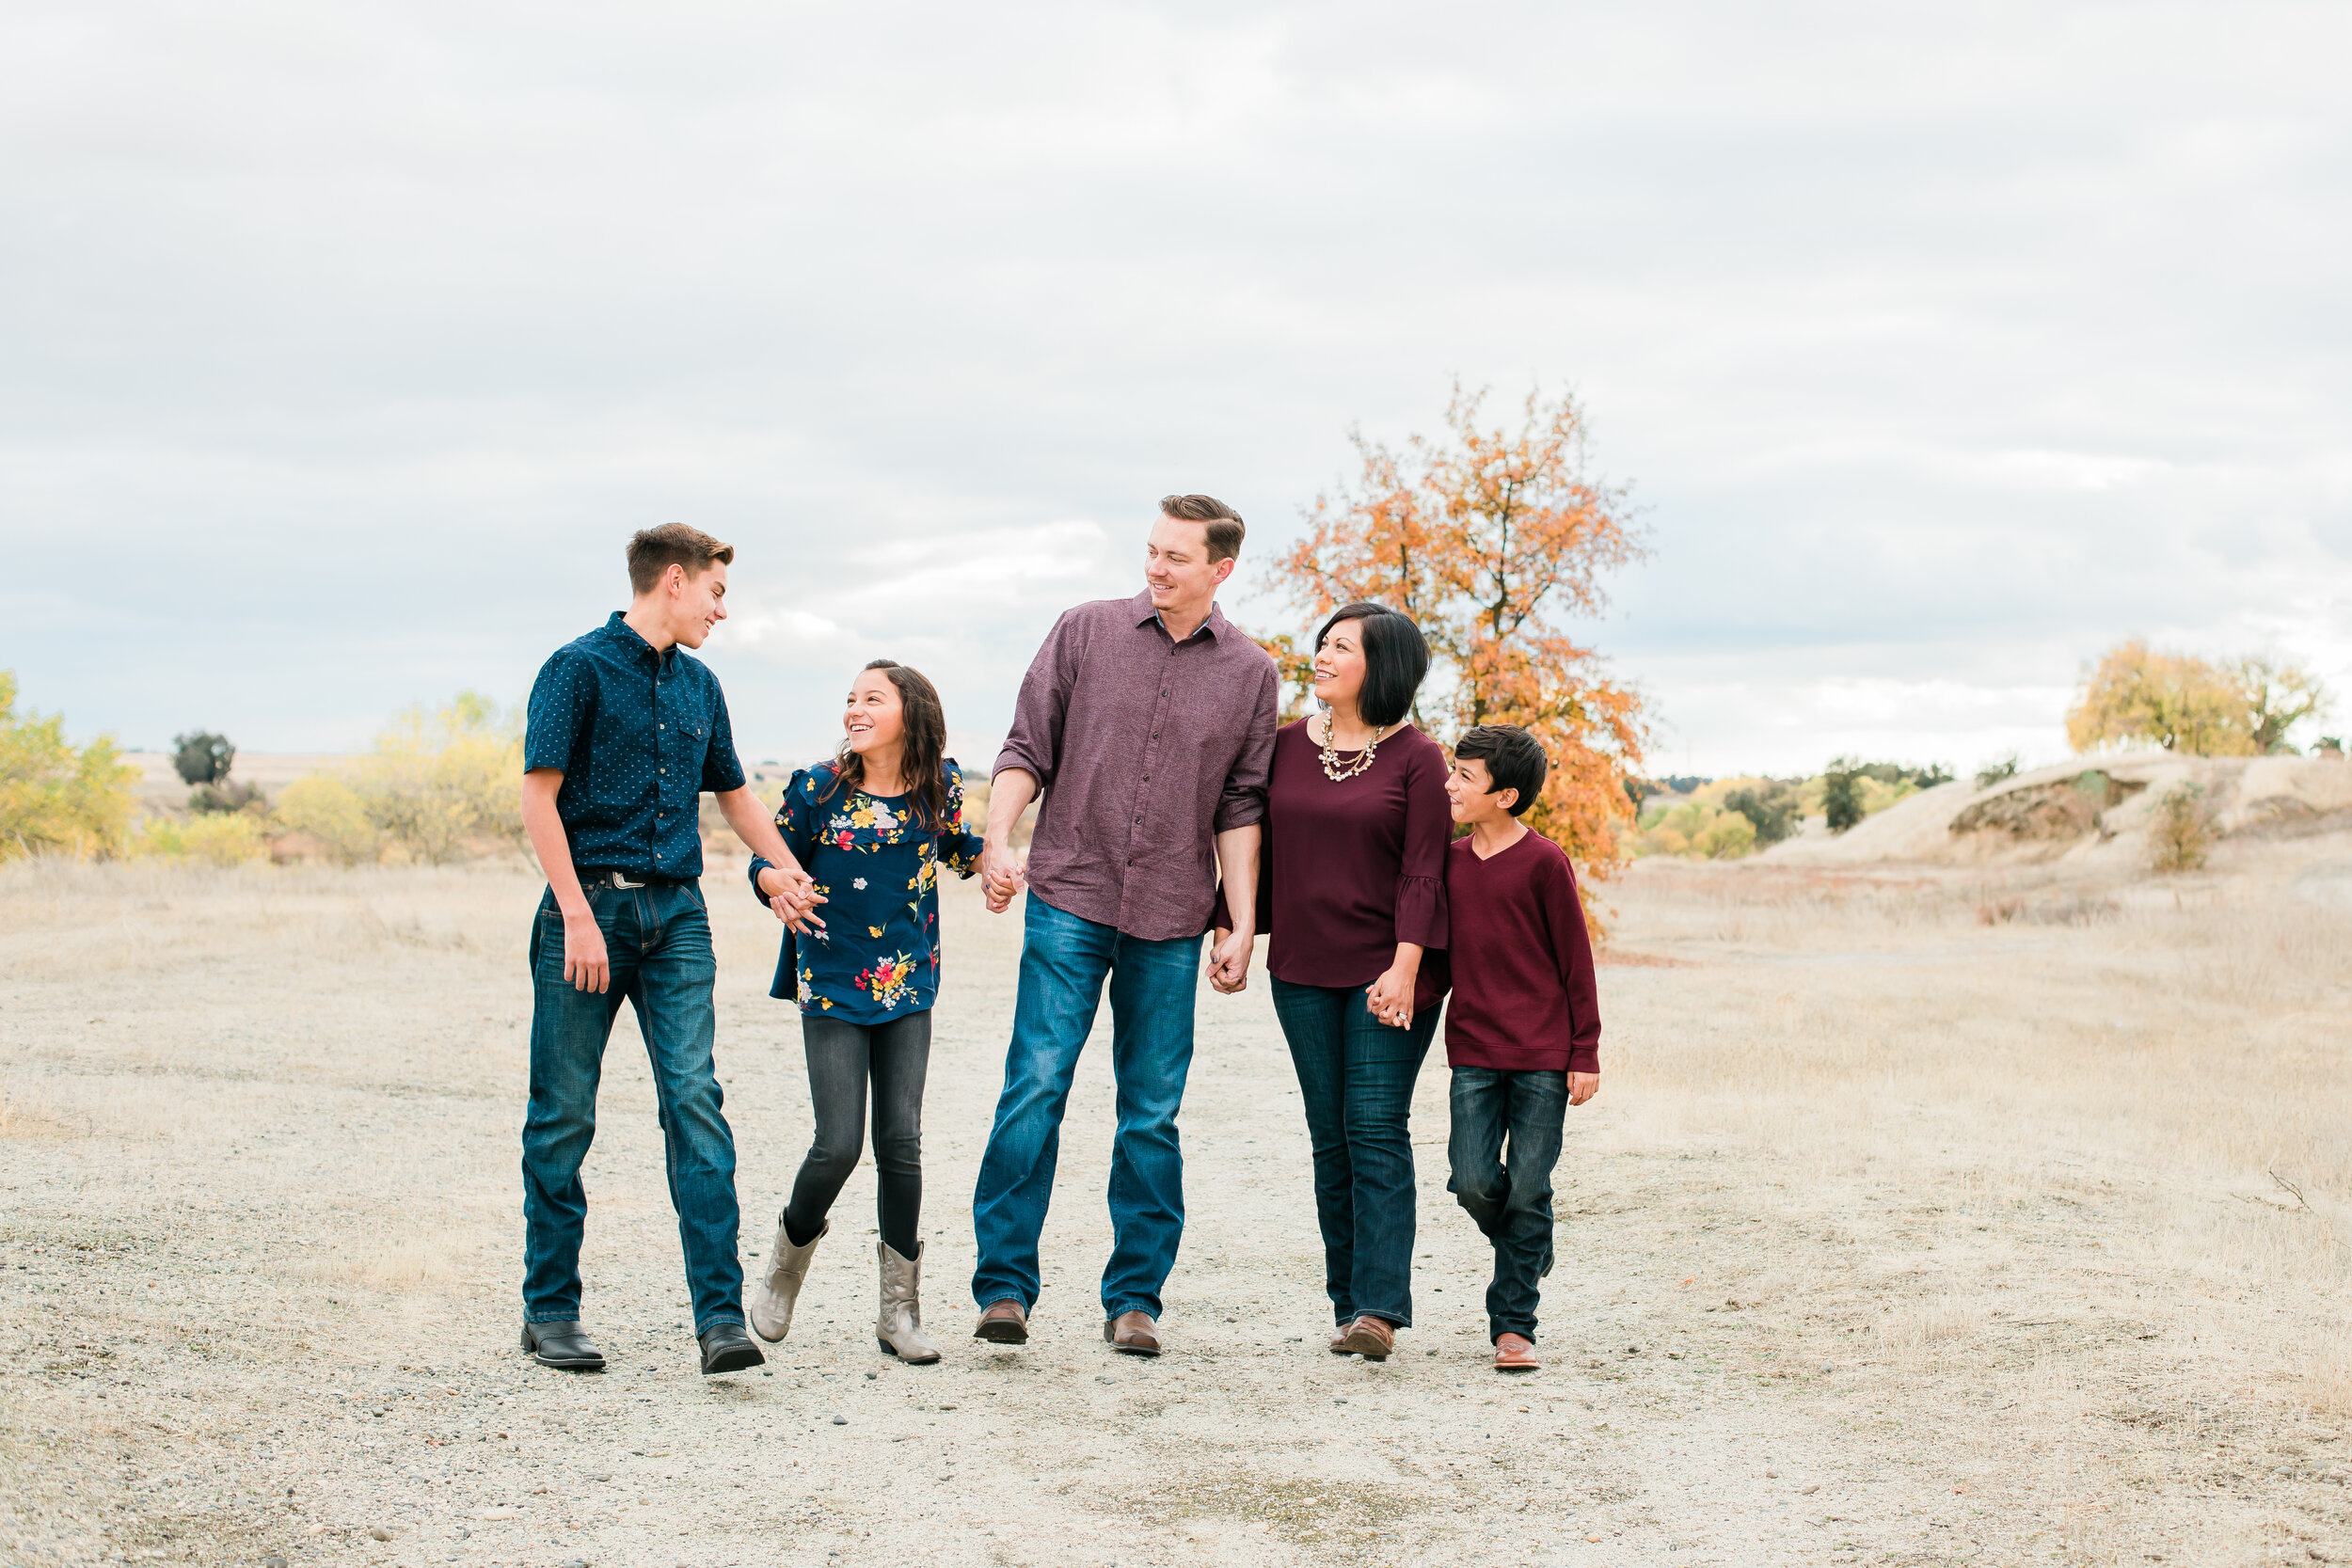 Fall family mini photos. Family standing, looking at each other, wearing fall colors with navy and burgundy.